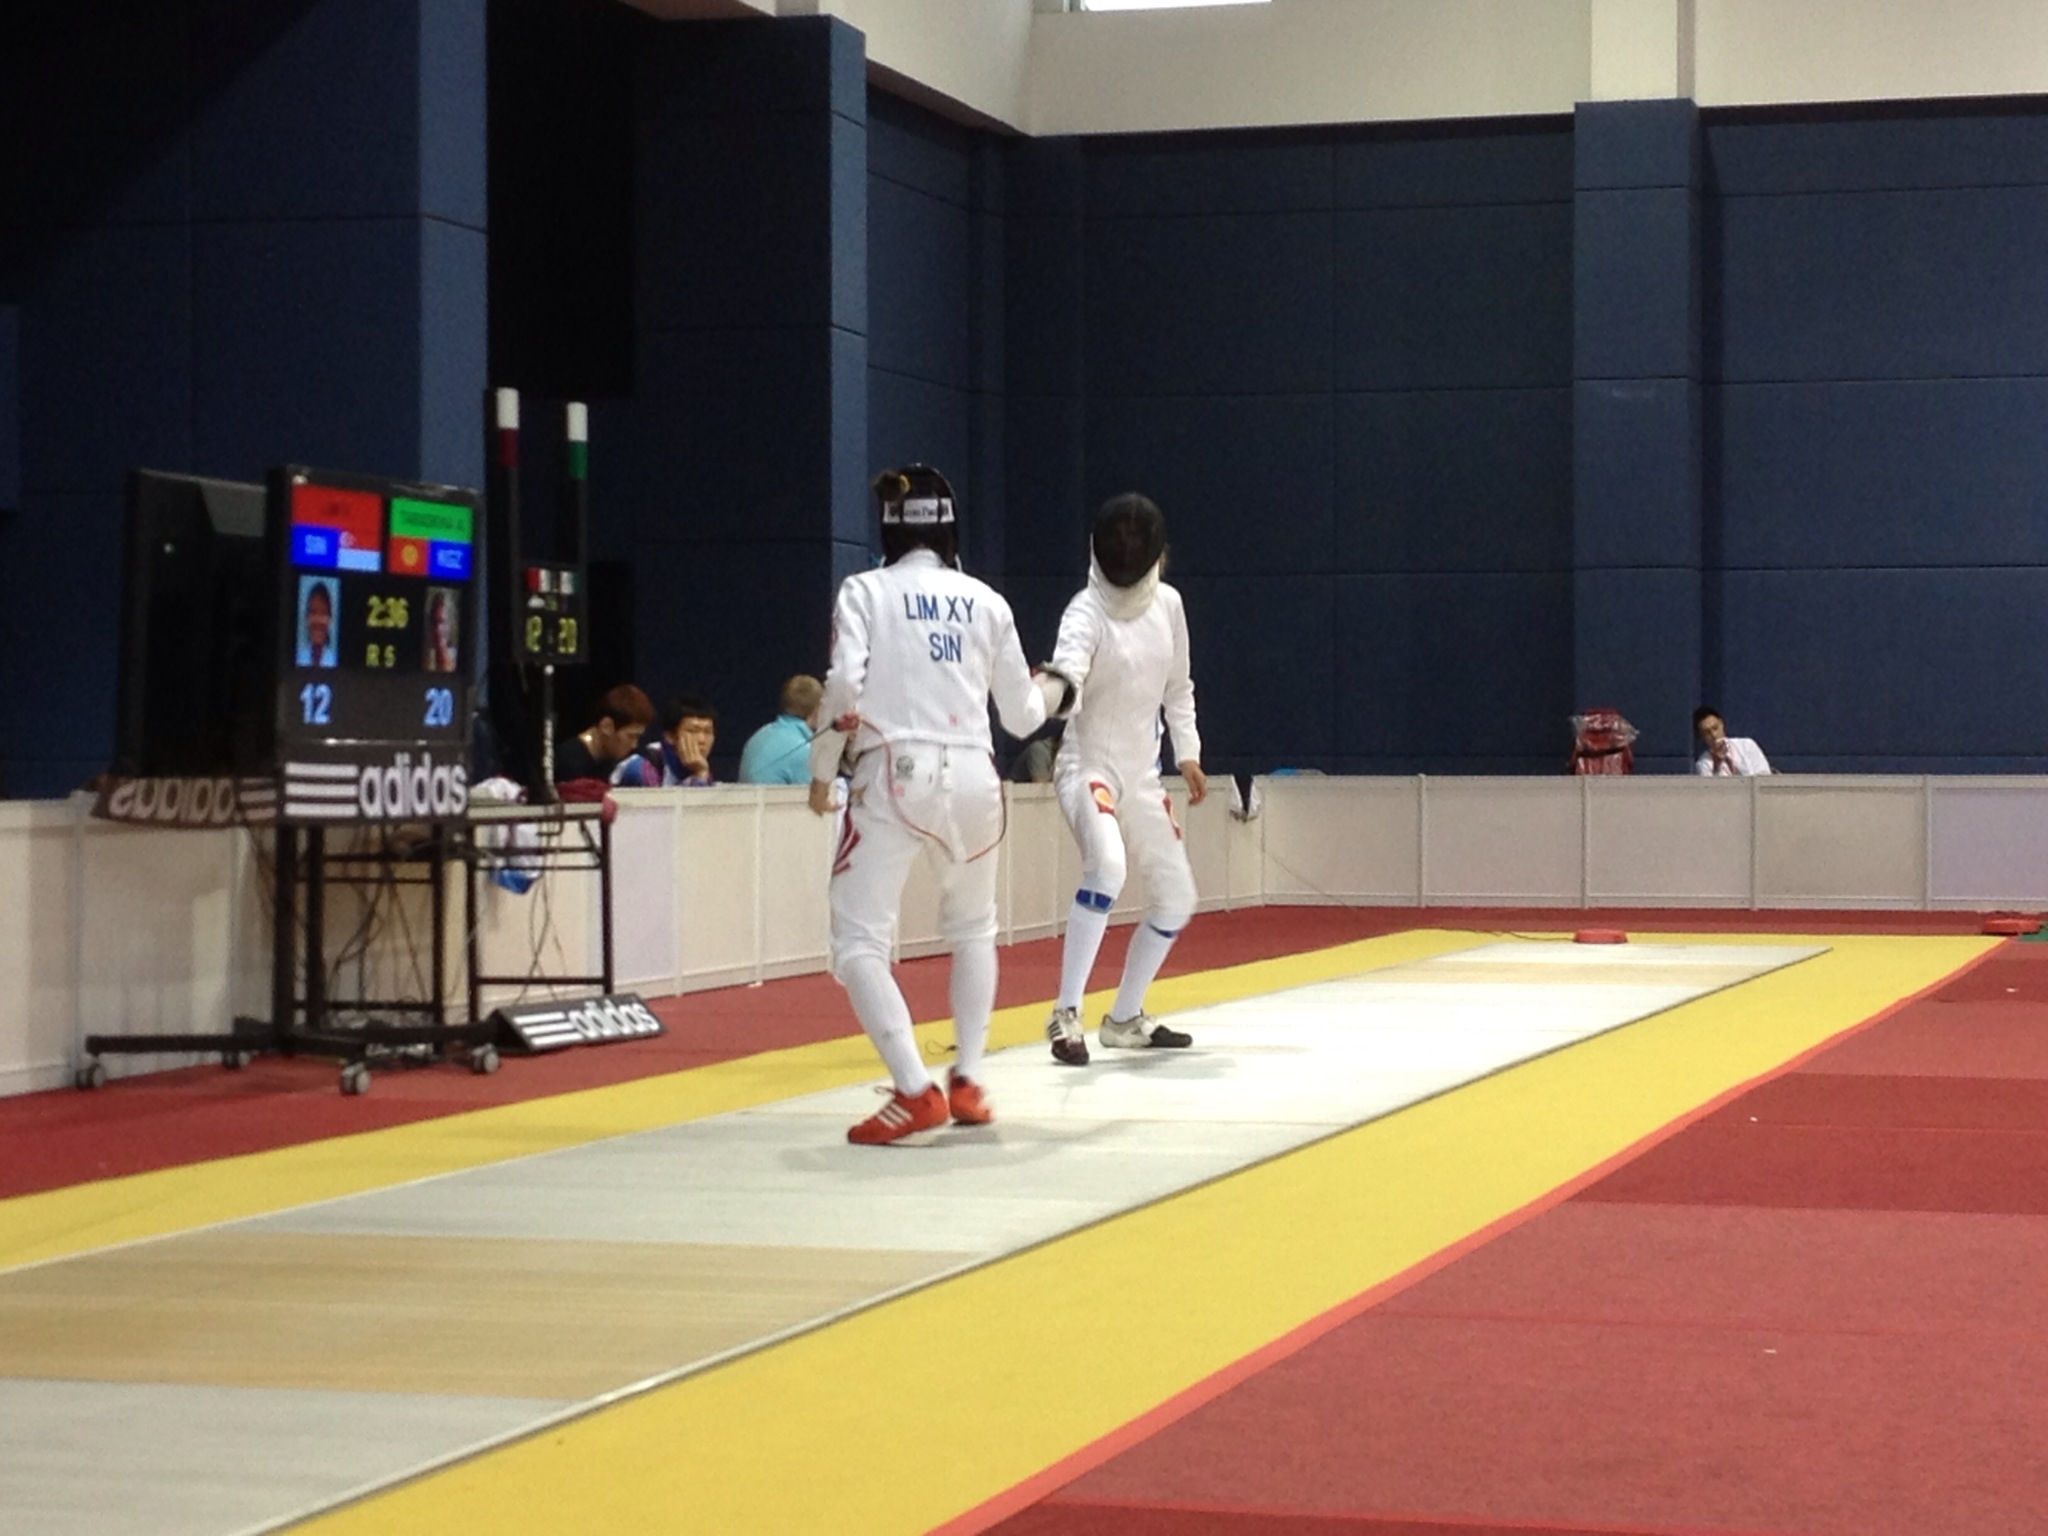 Asian Fencing Championships 2013 – Absolute Fencing